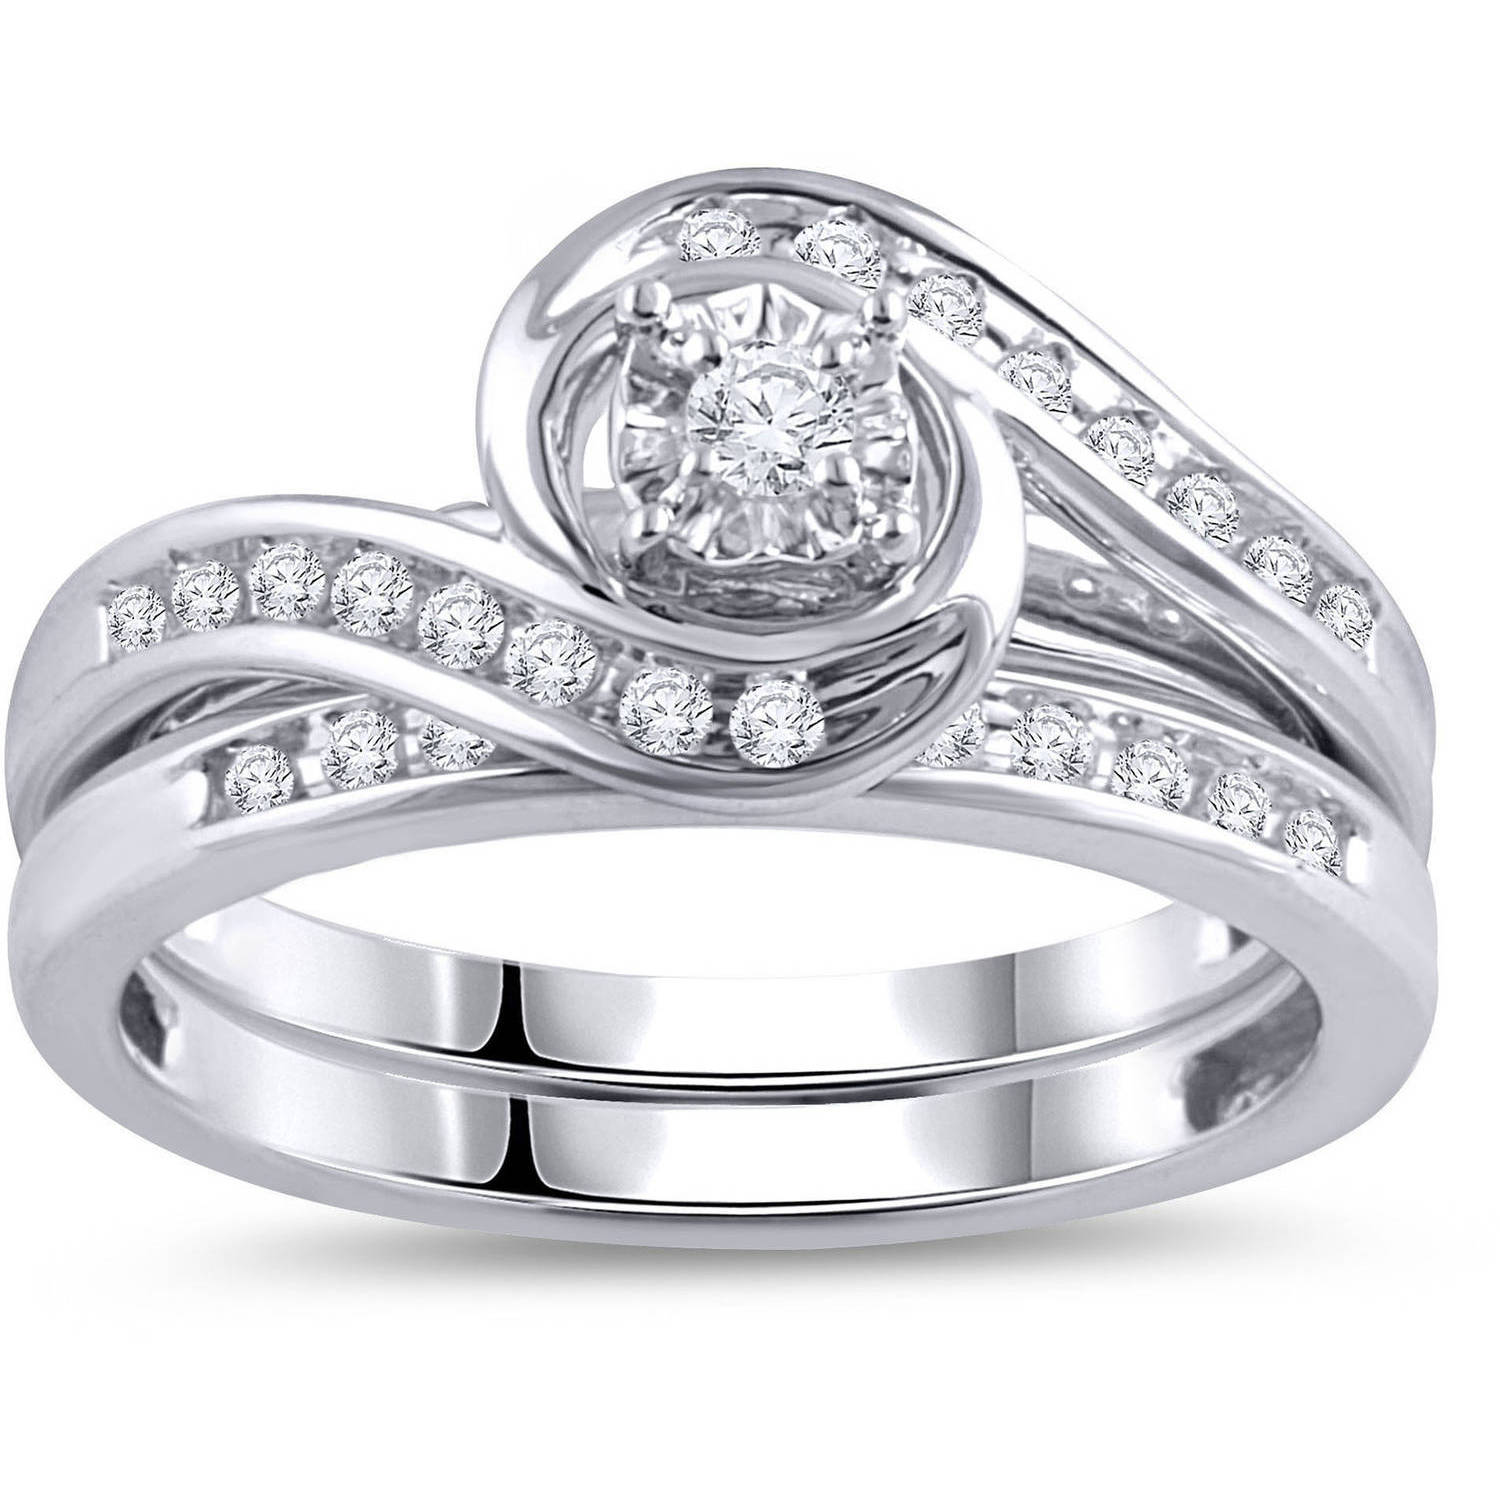 imperial 12 carat tw diamond single halo 10kt white gold engagement ring walmartcom - Wedding Rings From Walmart